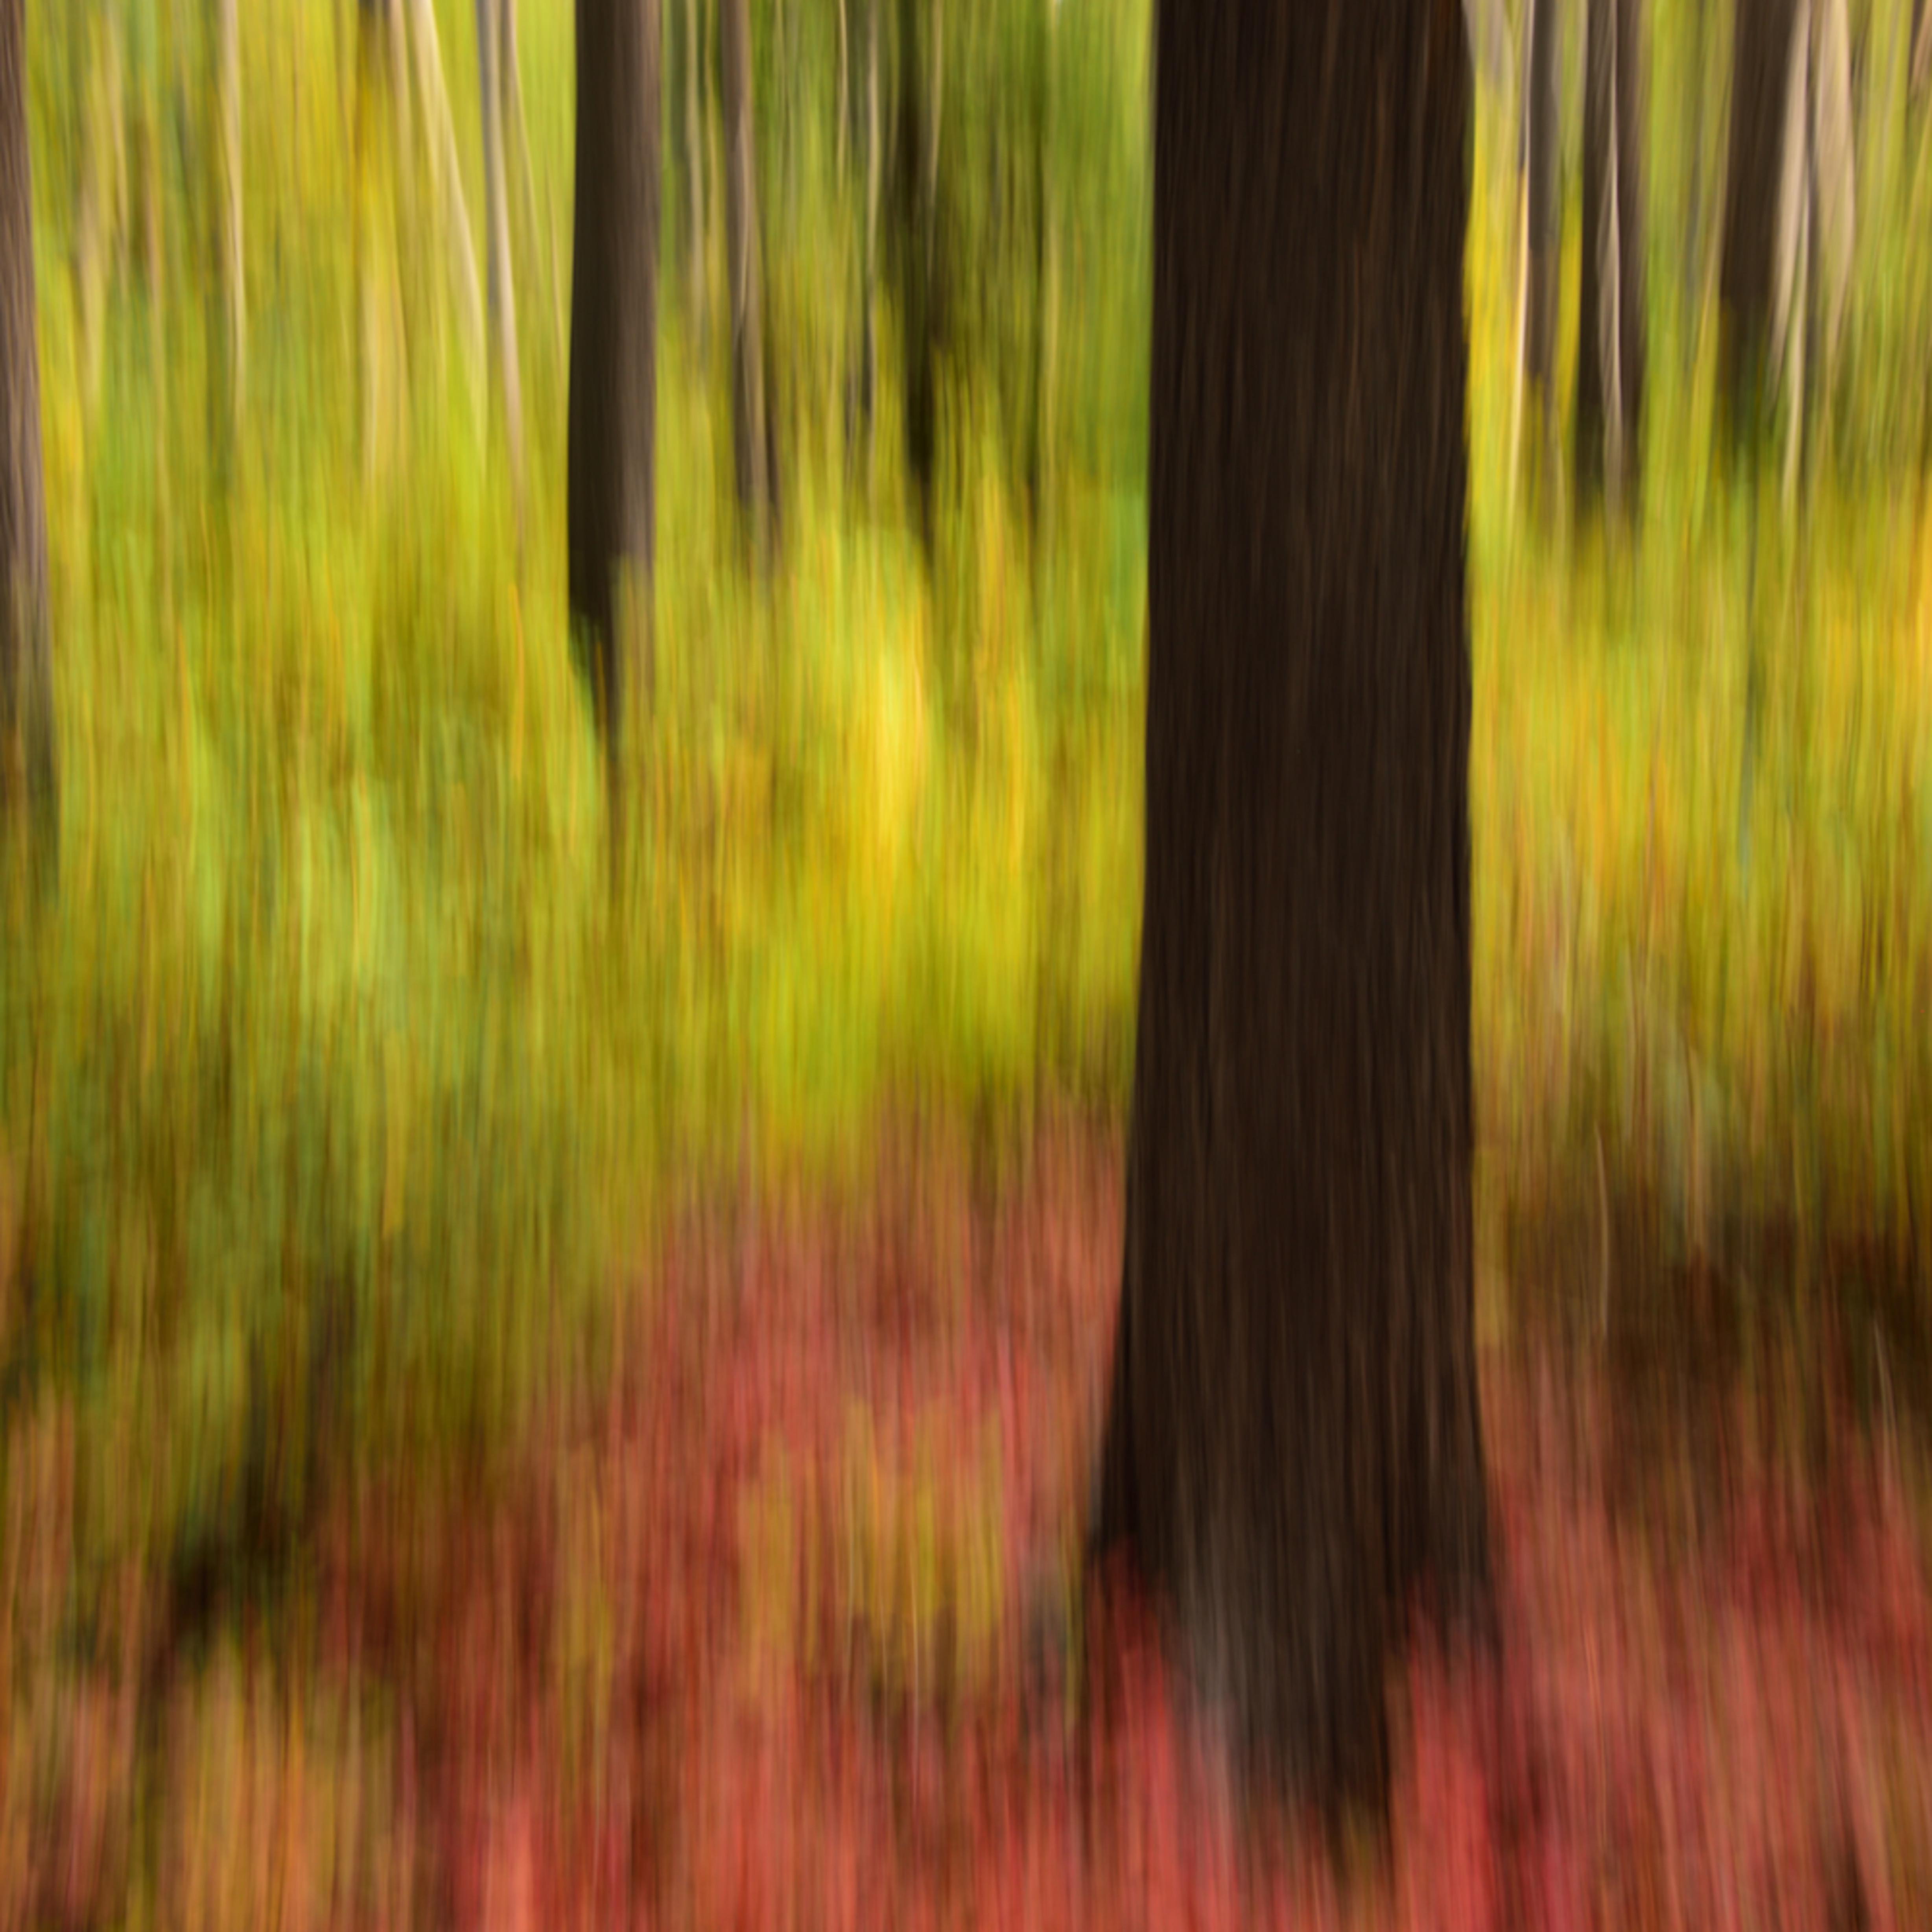 Refish lake.autumn quickens.motion blur asf rnk9yl